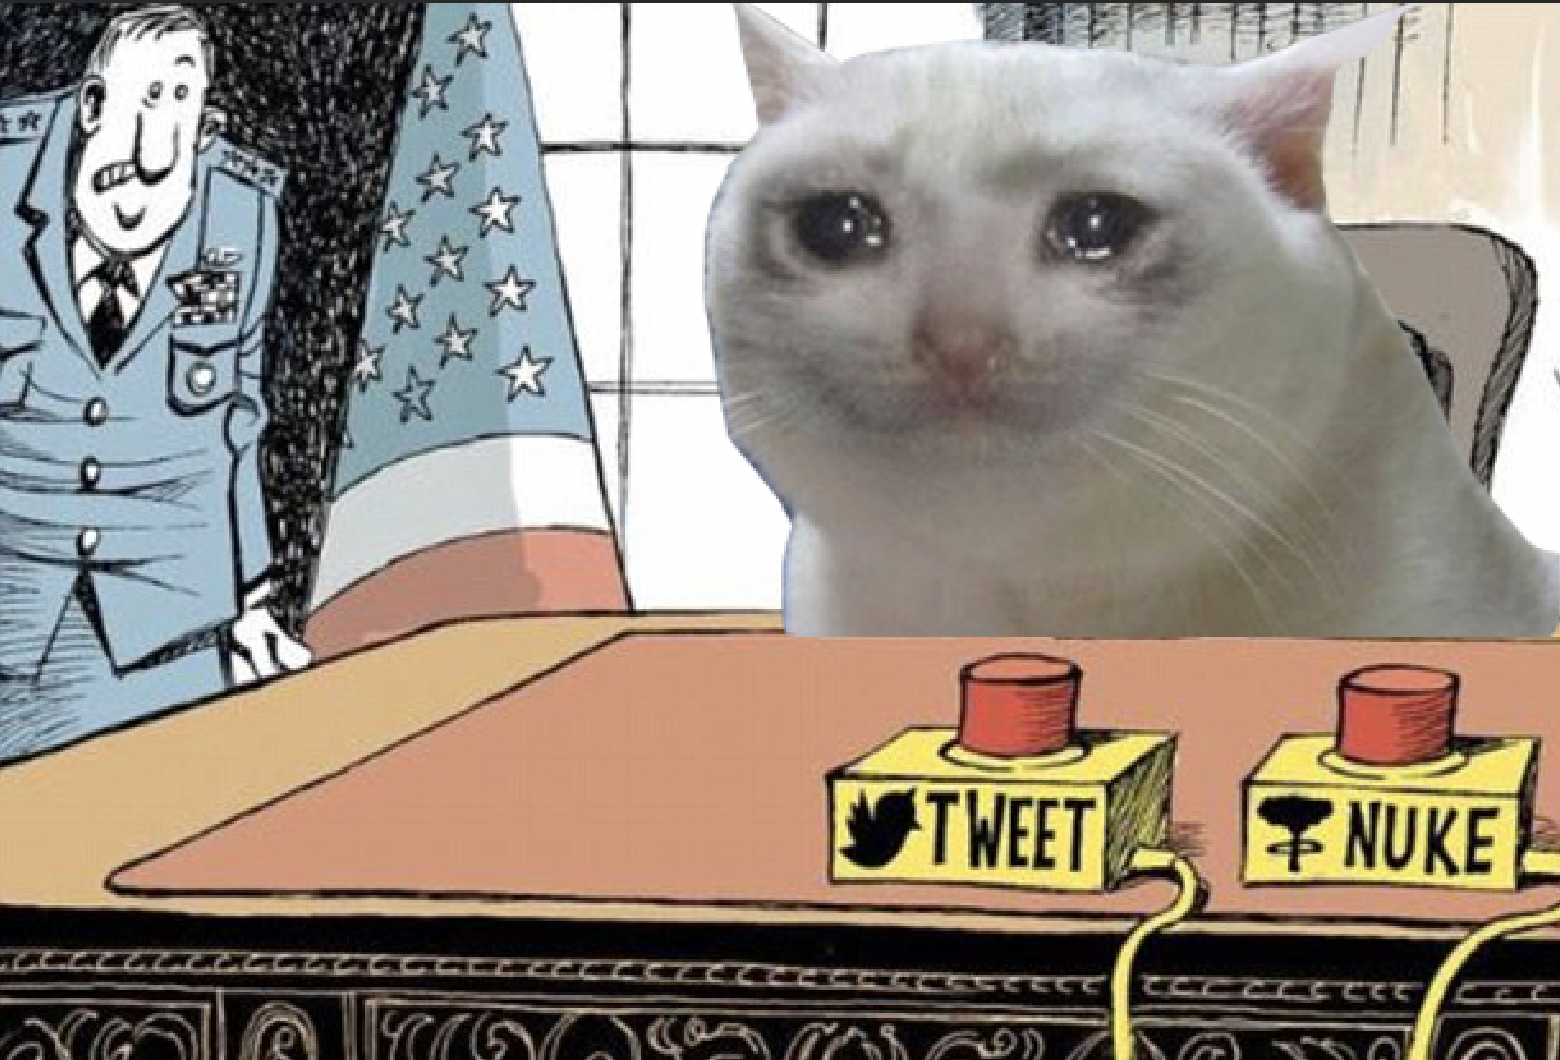 Crying cat tries to chose between button to launch nuclear warheads and button to tweet